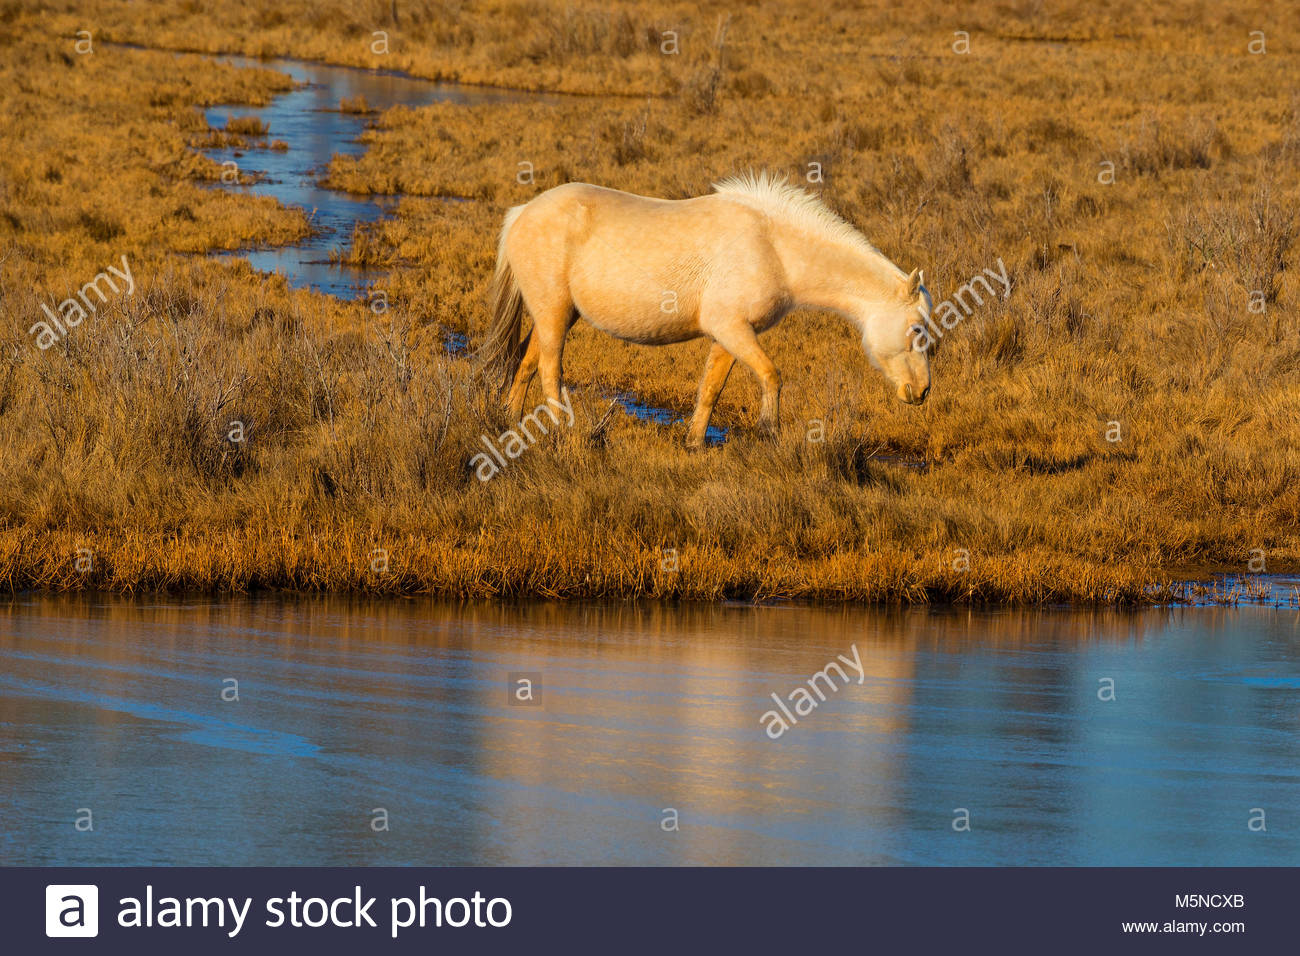 A Chincoteague pony (Equus caballus), also known as an Assateague horse, walks through a marsh on Assateague Island - Stock Image